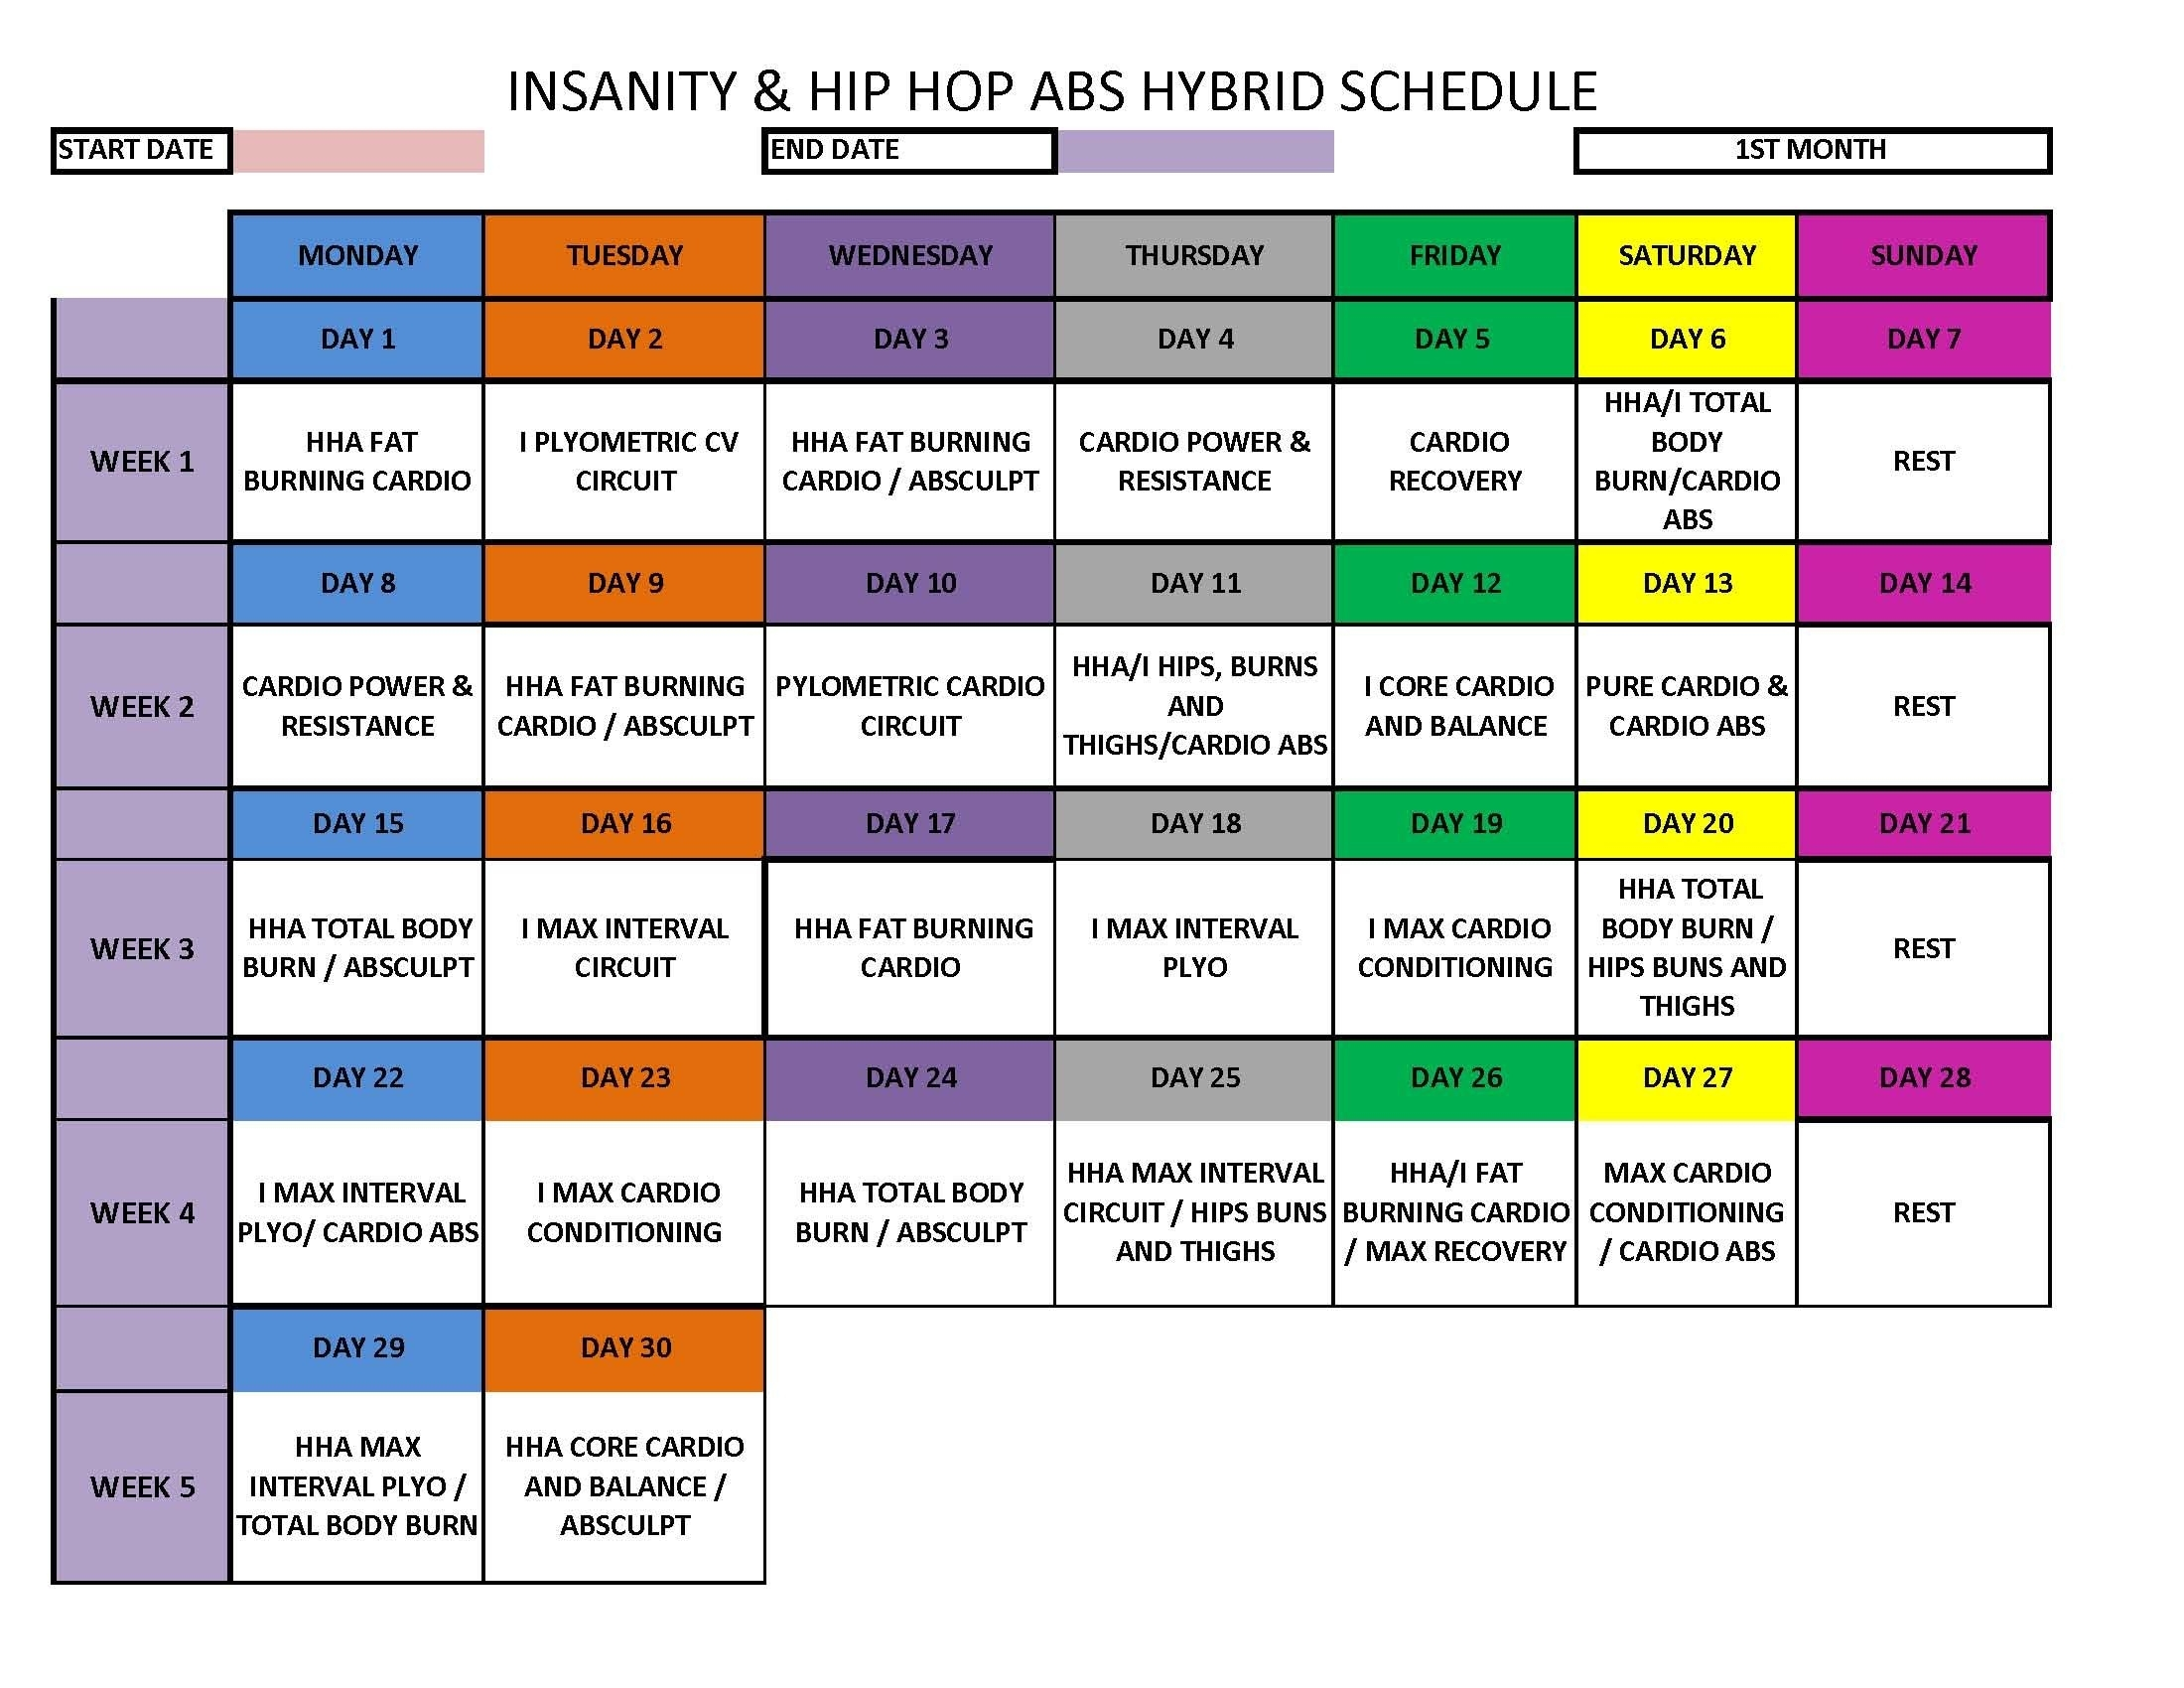 Insanity - Hip Hop Abs Hybrid Schedule | Insanity | Workout, Fitness intended for Hip Hop Abs Month 2 Calendar